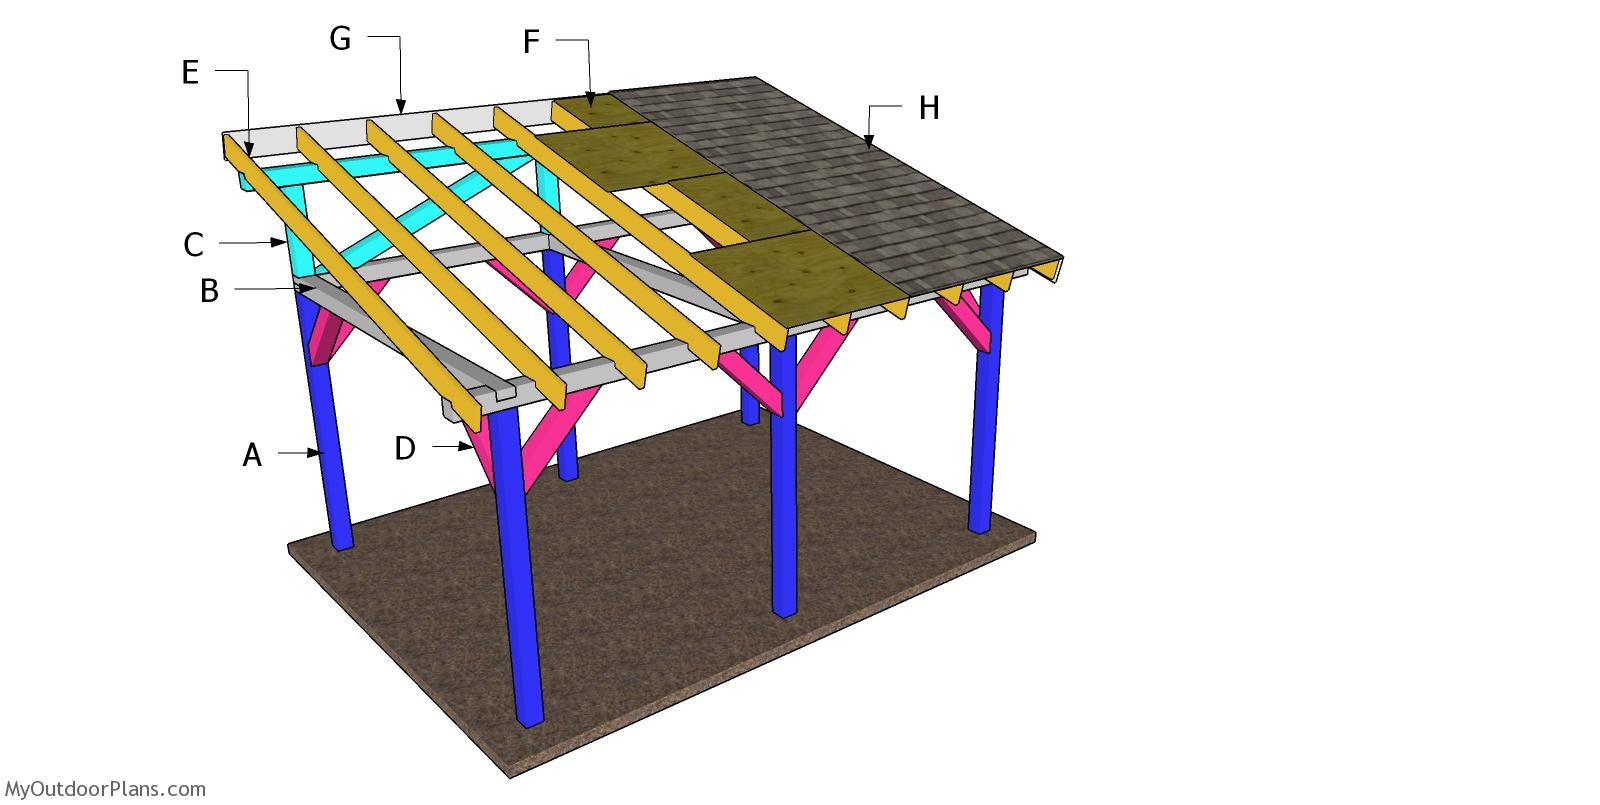 12x16 Lean to Pavilion Roof Plans